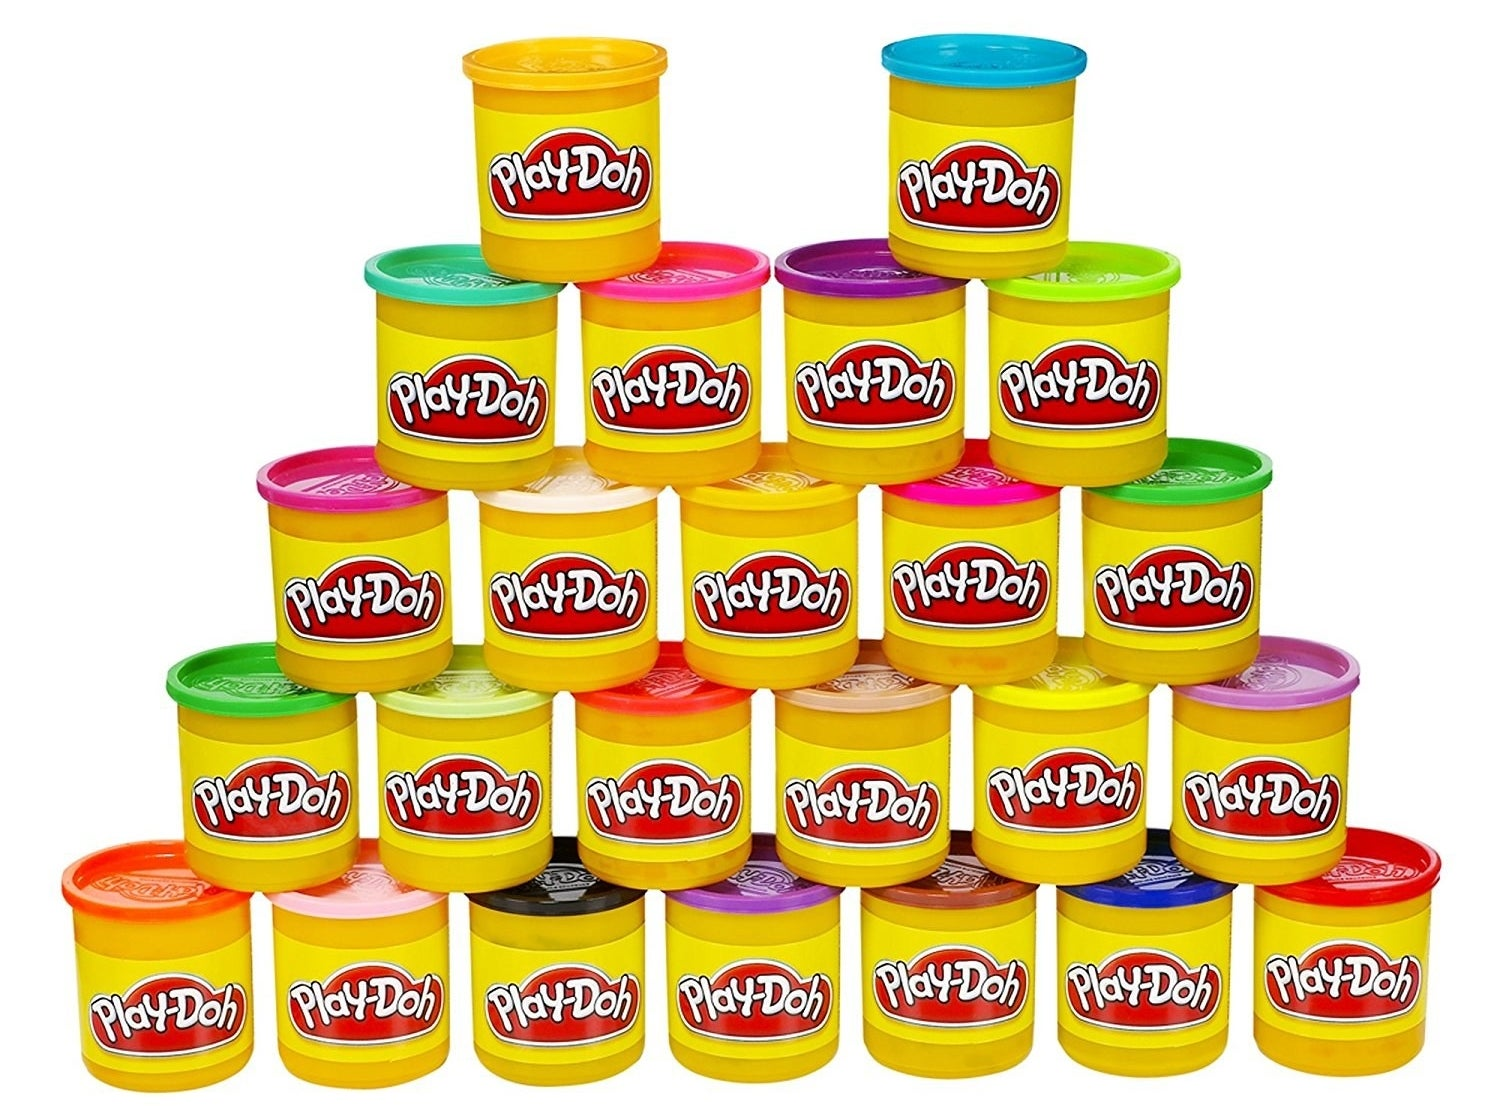 "Promising review: ""I swear that Play-Doh has gotten better since I was a kid. This stuff is practically mess-free. It doesn't stick to anything and when any stray little crumbs dry up in a few hours, they are easy to sweep or vacuum away. When pulling old Play-Doh out of a toy with a popsicle stick, the whole thing pops right out and doesn't leave sticky residue inside of small areas. I use toothpicks and fingernail tools to get it out of any small crevice areas, comes right out! This also doesn't stain or leave oily residue! I LOVE Play-Doh because two or three colors can entertain my EXTREMELY busy toddler for sometimes up to 45 minutes! That's 45 whole minutes where I'm not chasing a small child around the house. Sometimes I'm even able to make an important phone call or clean something! It's well worth the money, especially in rainy and cold climates where toddlers can't always get outside"" —Van & Heidi Price: $19.40 (for a 24-pack)"